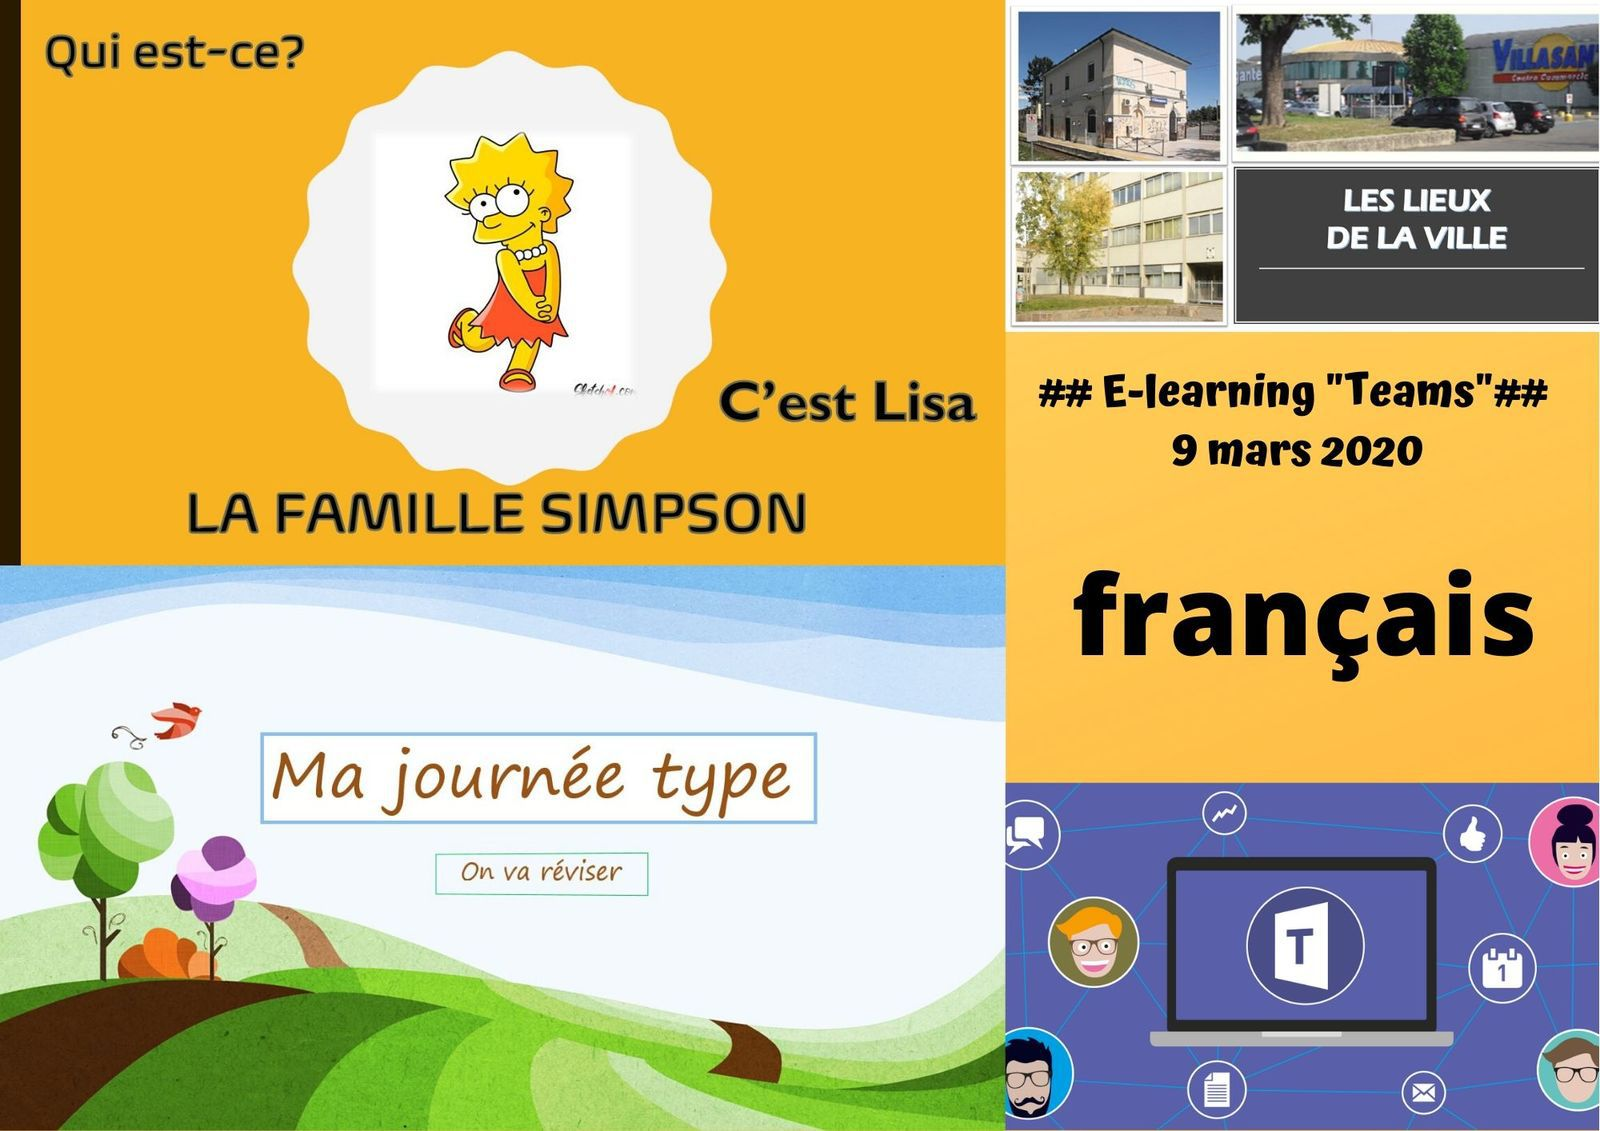 "## E-learning ""Teams"" - français"" ##"